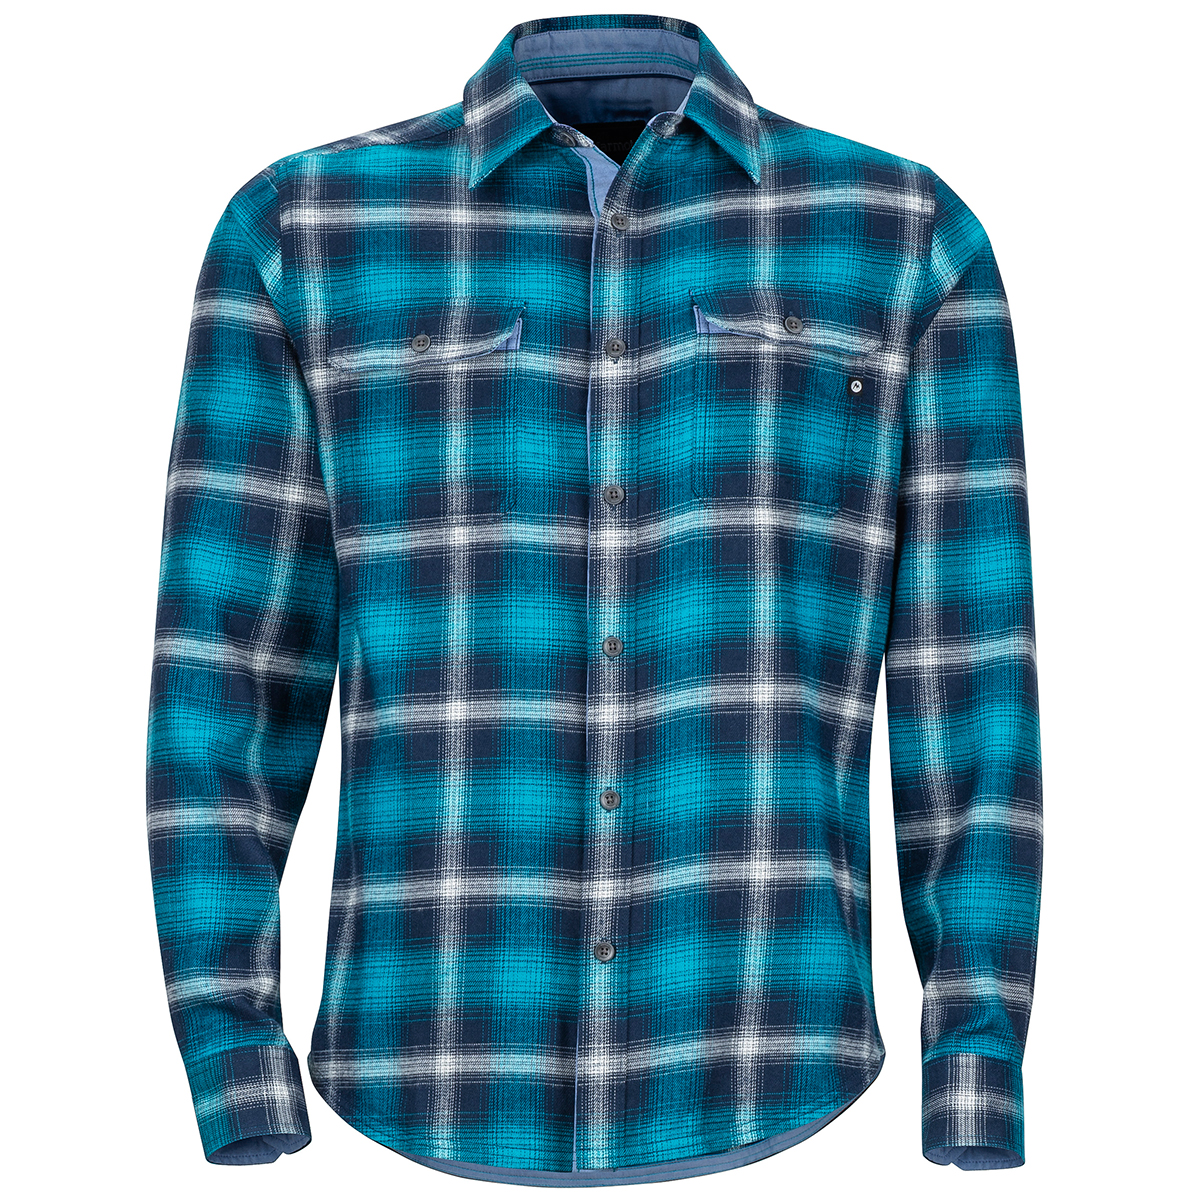 Marmot Men's Jasper Midweight Long-Sleeve Flannel Shirt - Blue, M